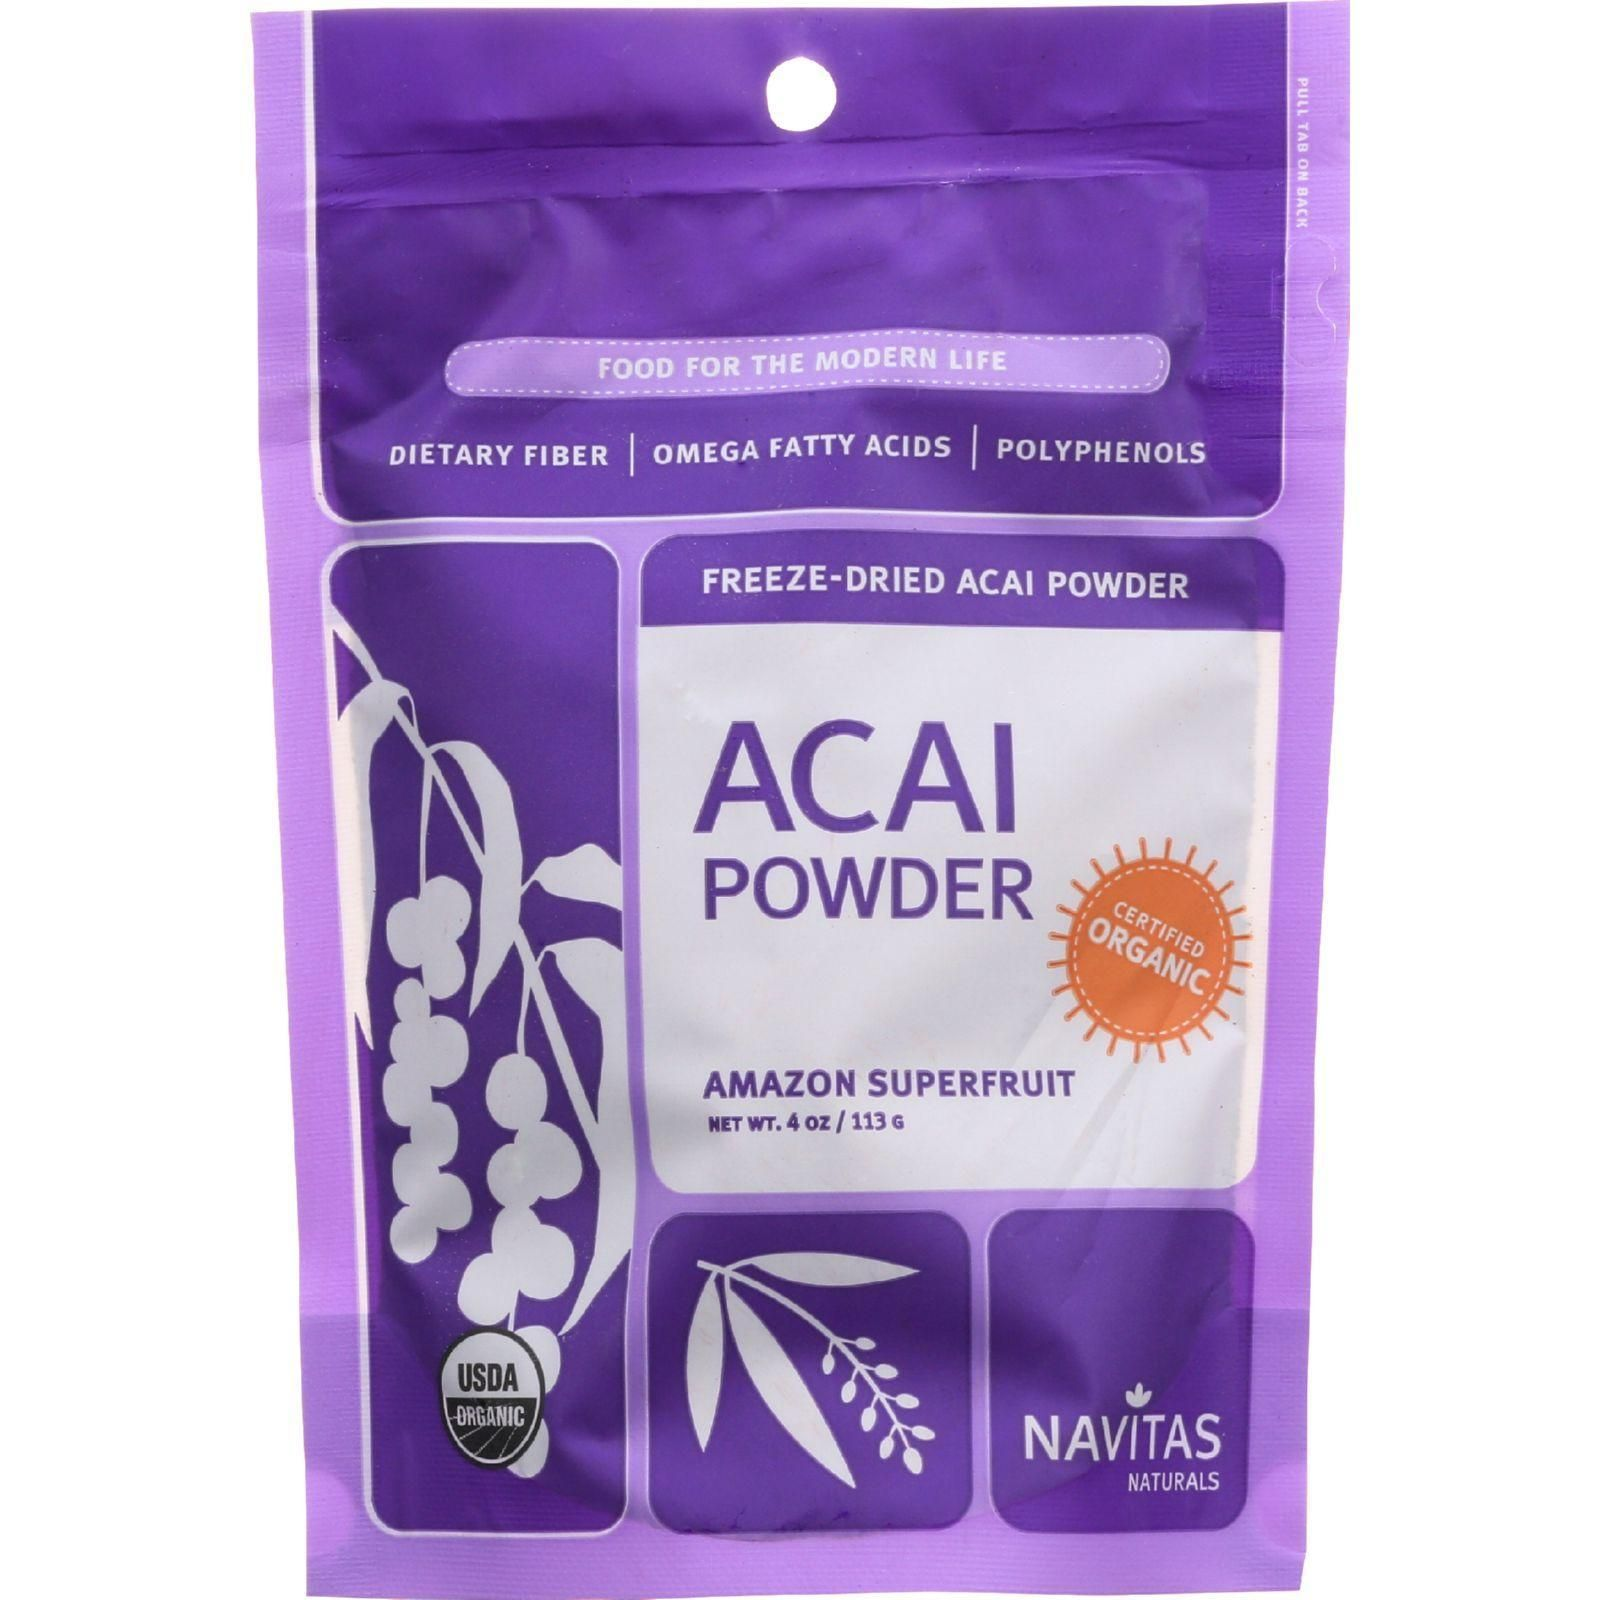 Navitas Naturals Acai Powder - Organic - Freeze-dried - 4 Oz - Case Of 12